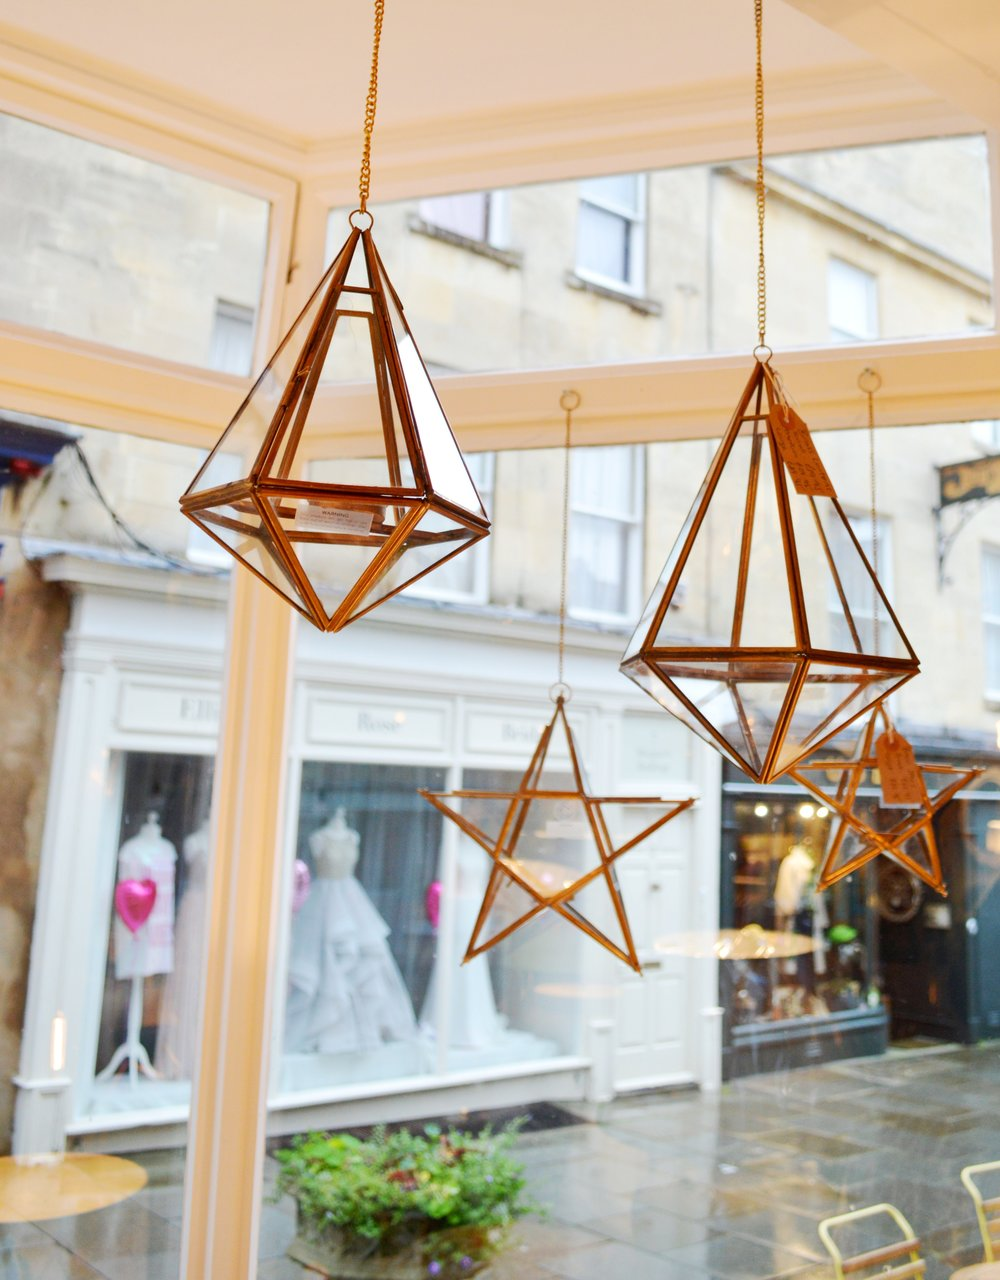 Hanging Lanterns from Nkuku Small £19.95, Medium £29.95 and Large £39.95